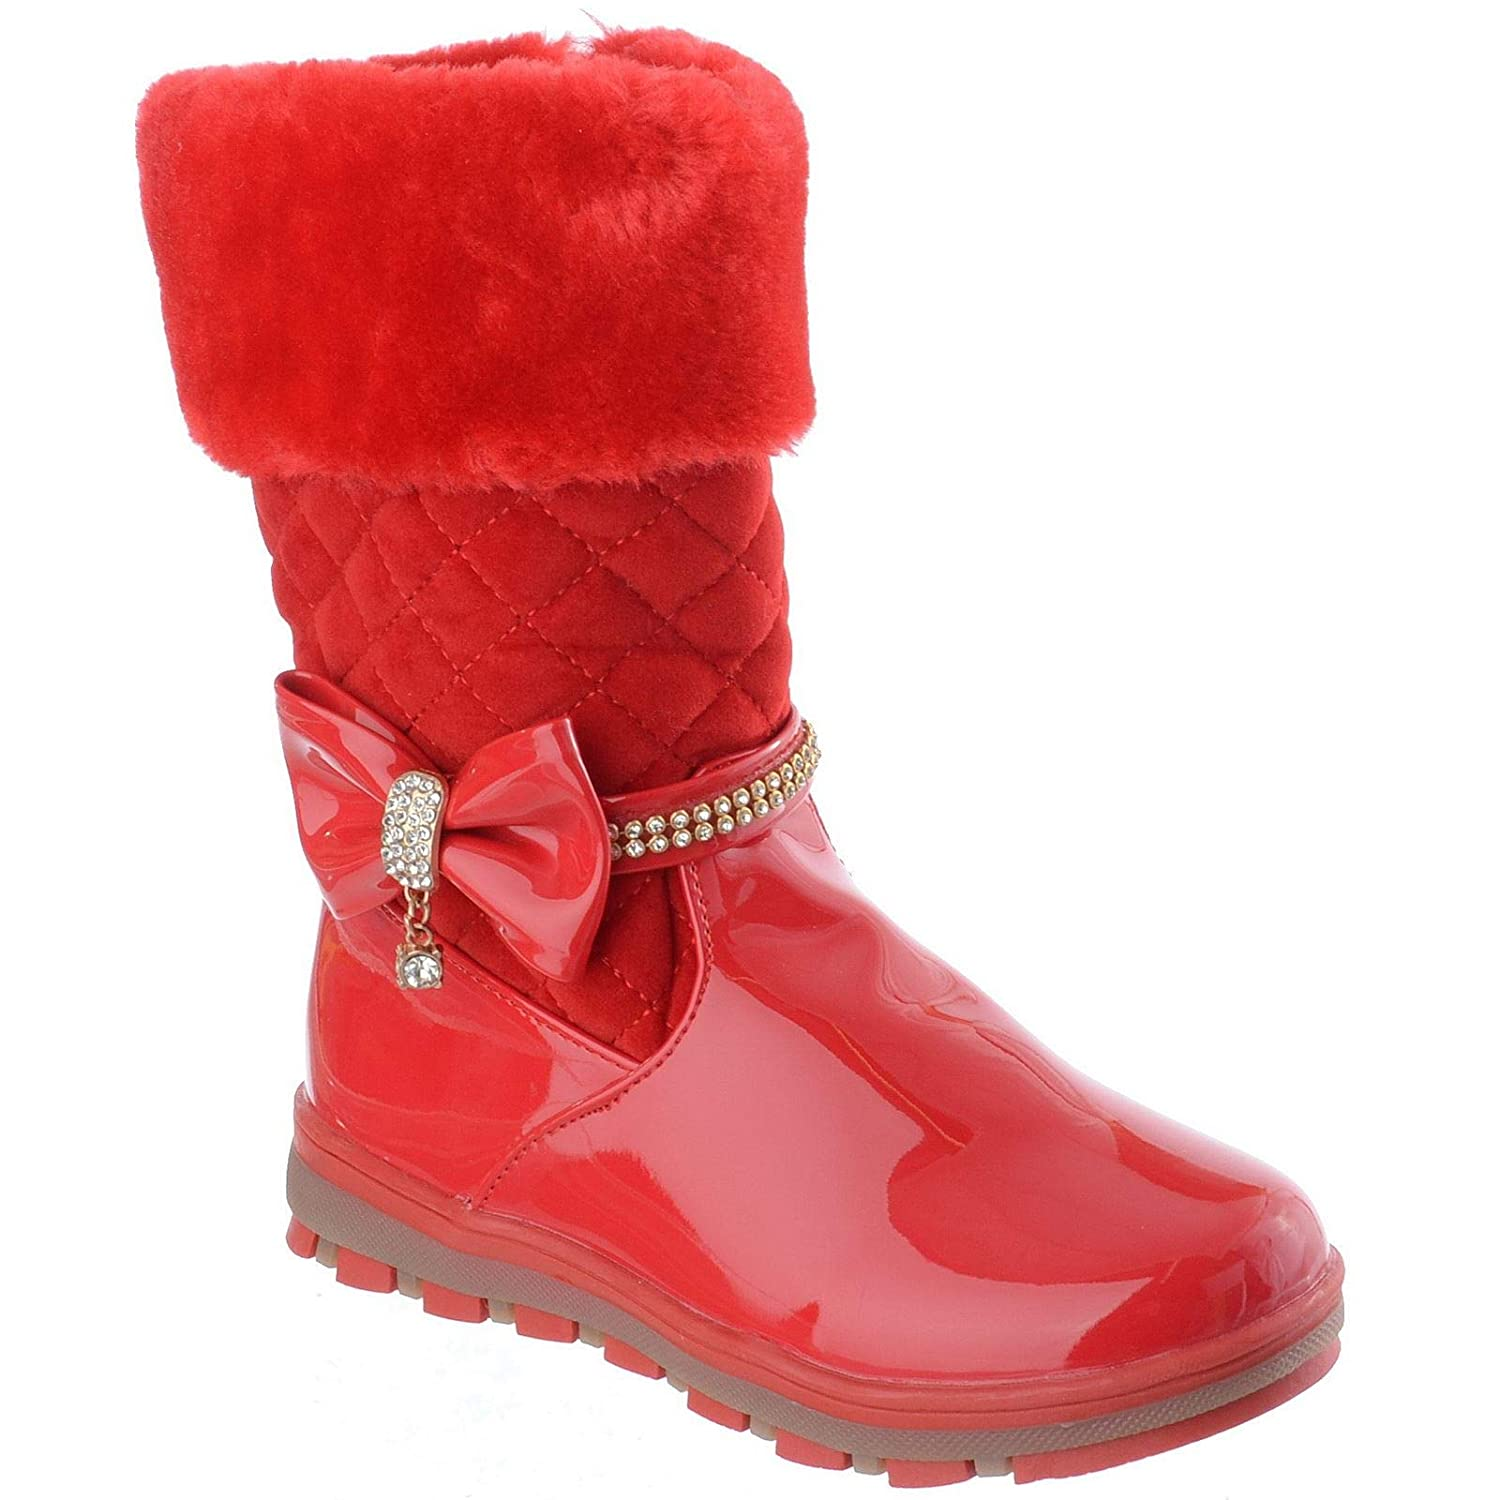 Miss Image UK Girls Kids Infants Winter Warm Quilted Bow Diamante Zip Ankle Boots Shoes Size